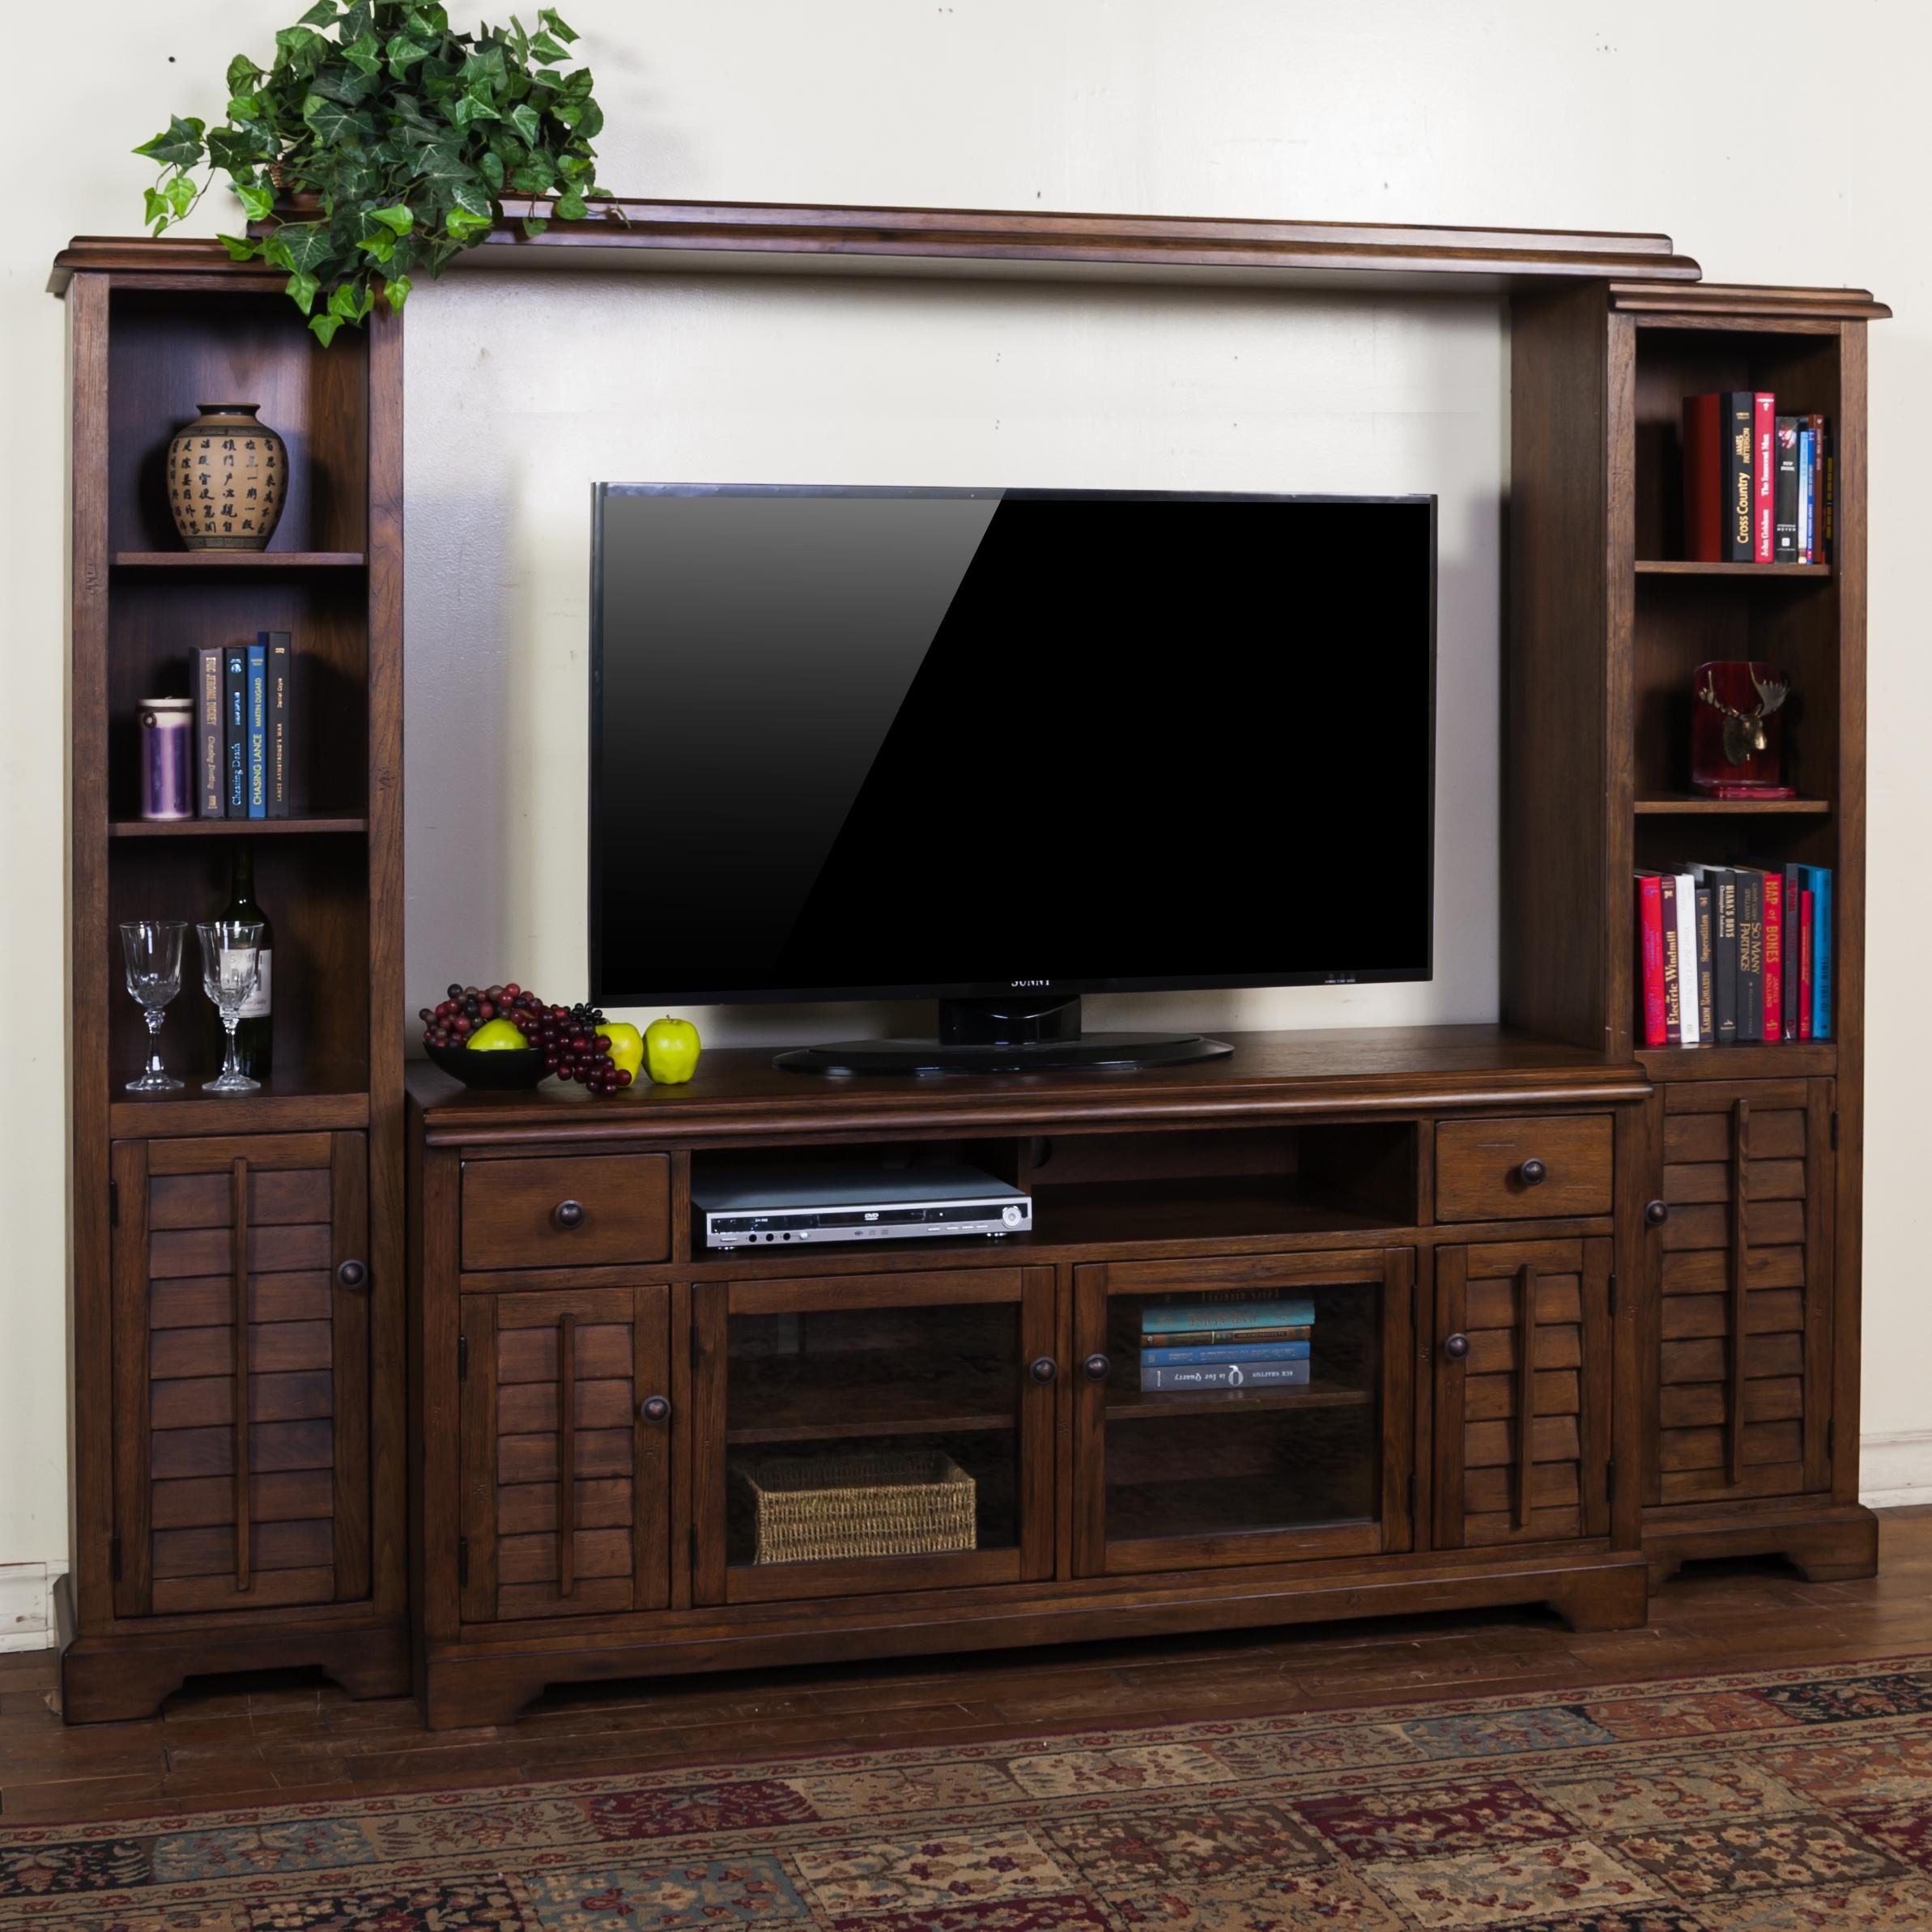 Flat screen tv wall unit designs large size of tv media for Large tv wall units